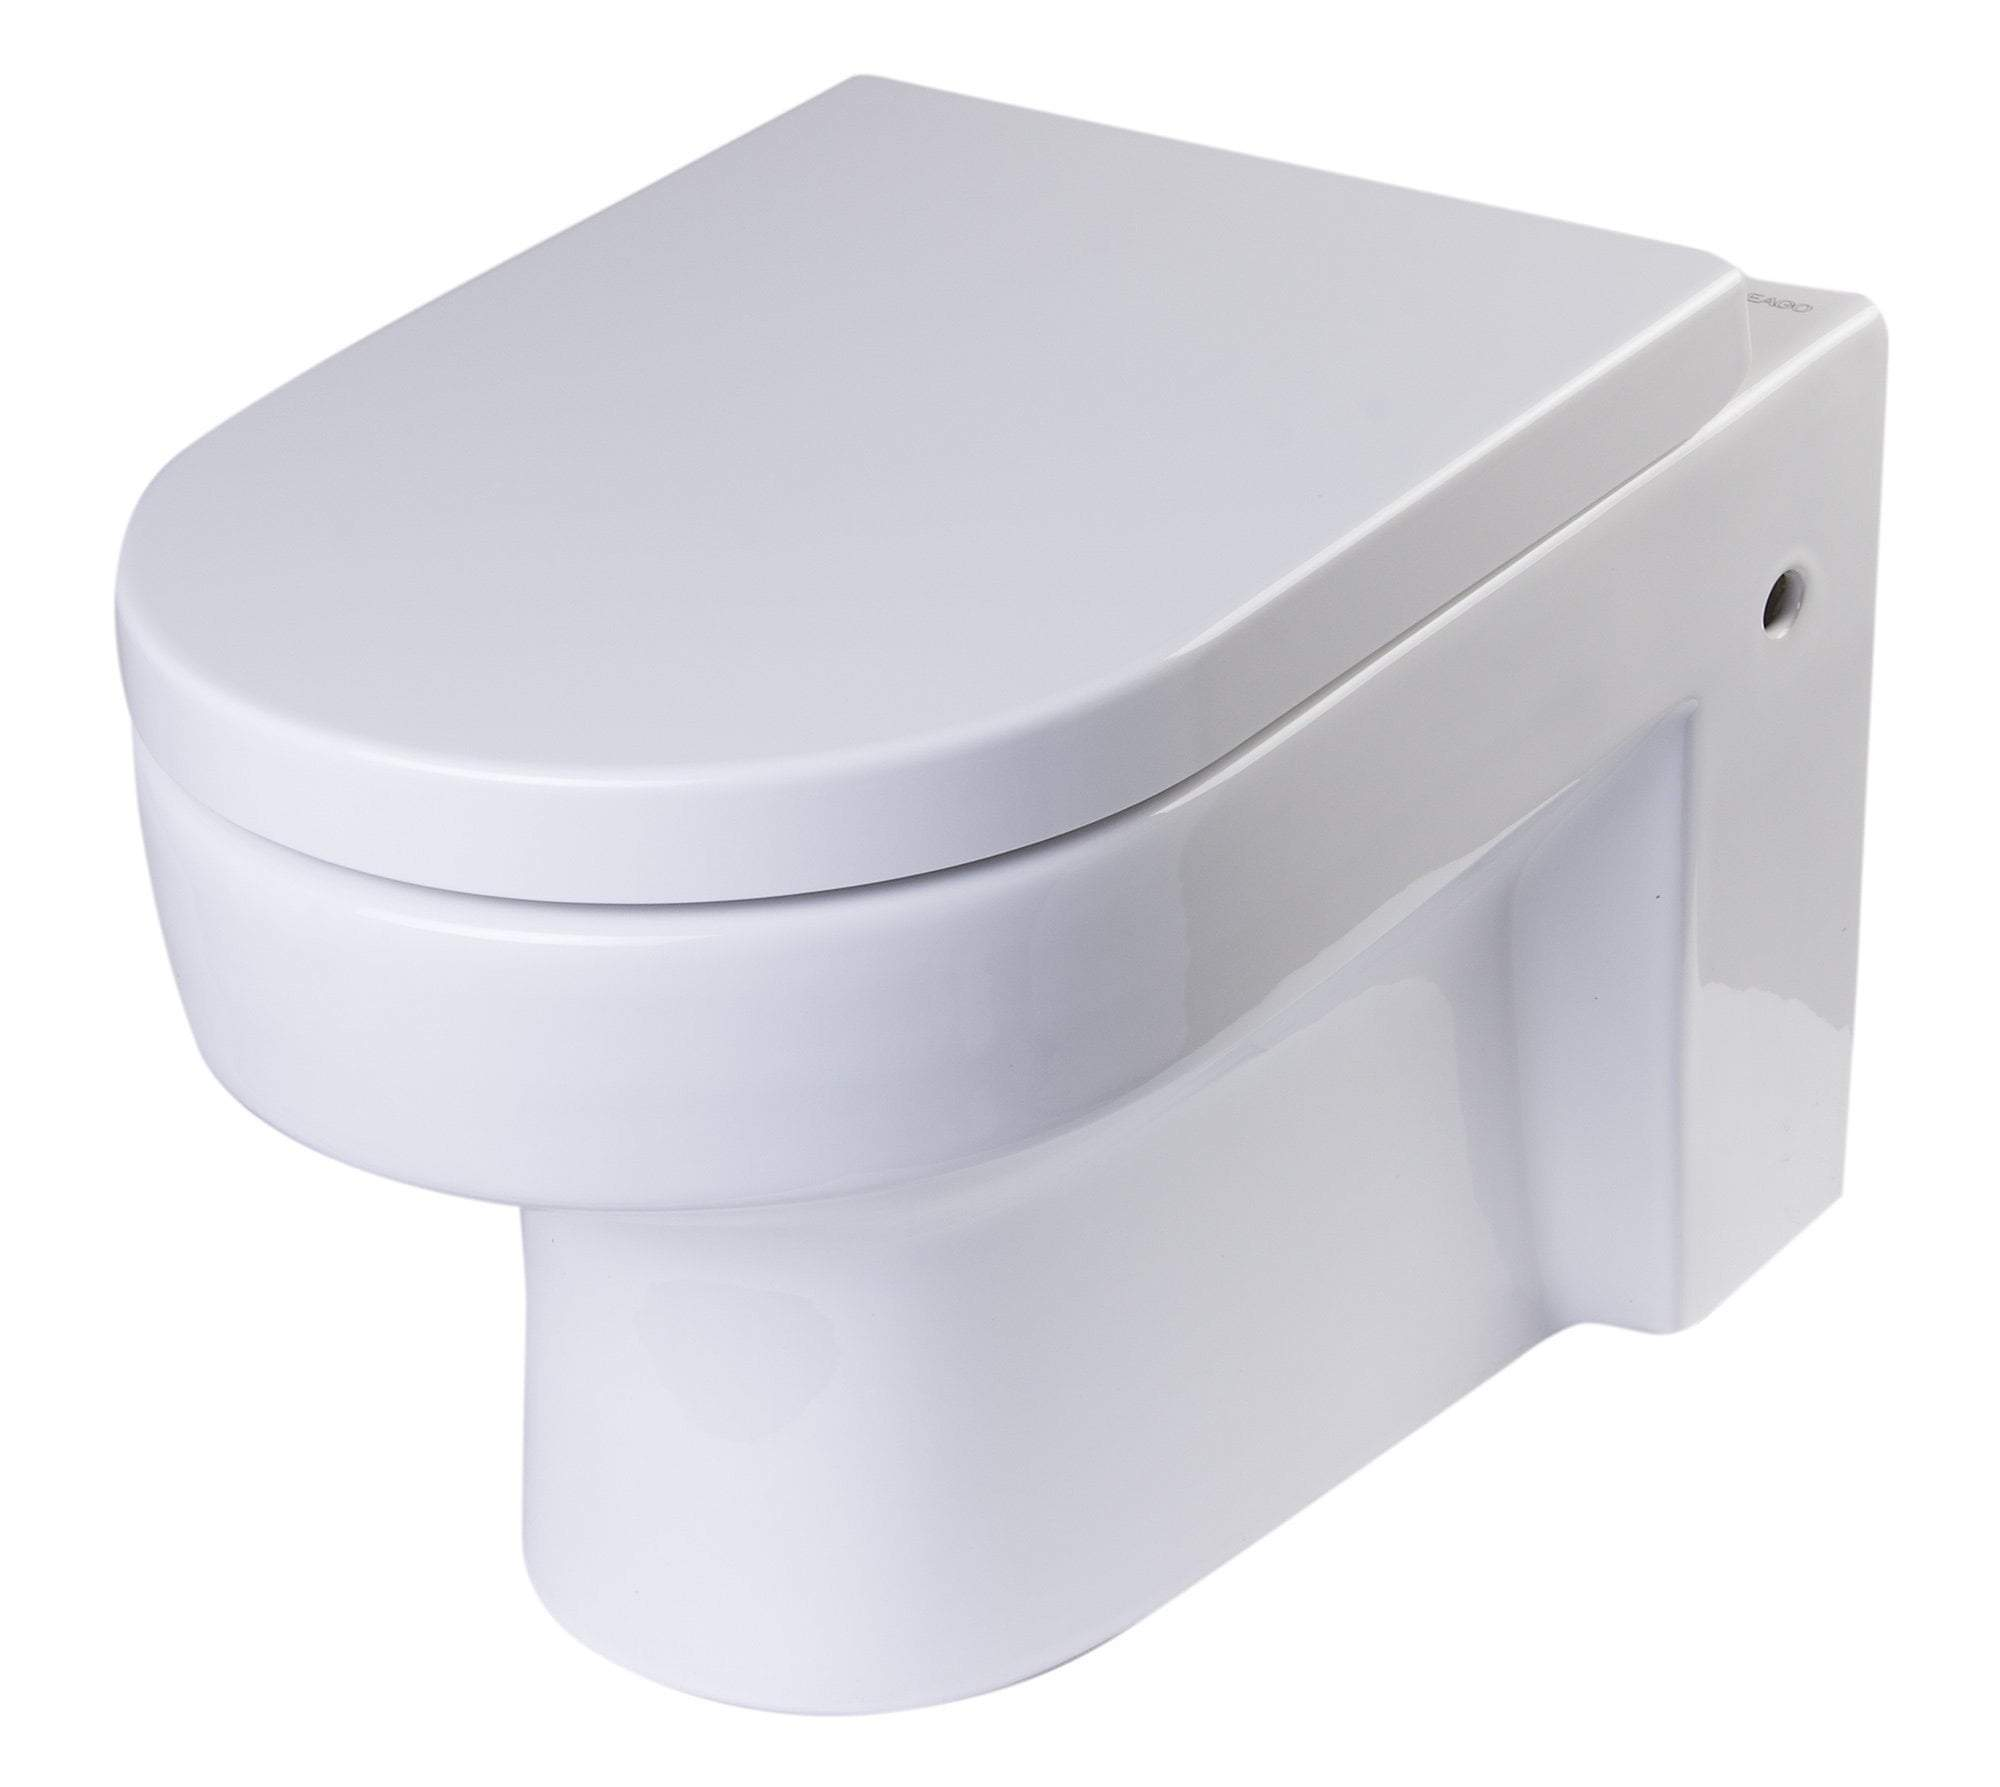 Round Modern Wall Mount Dual Flush Toilet Bowl